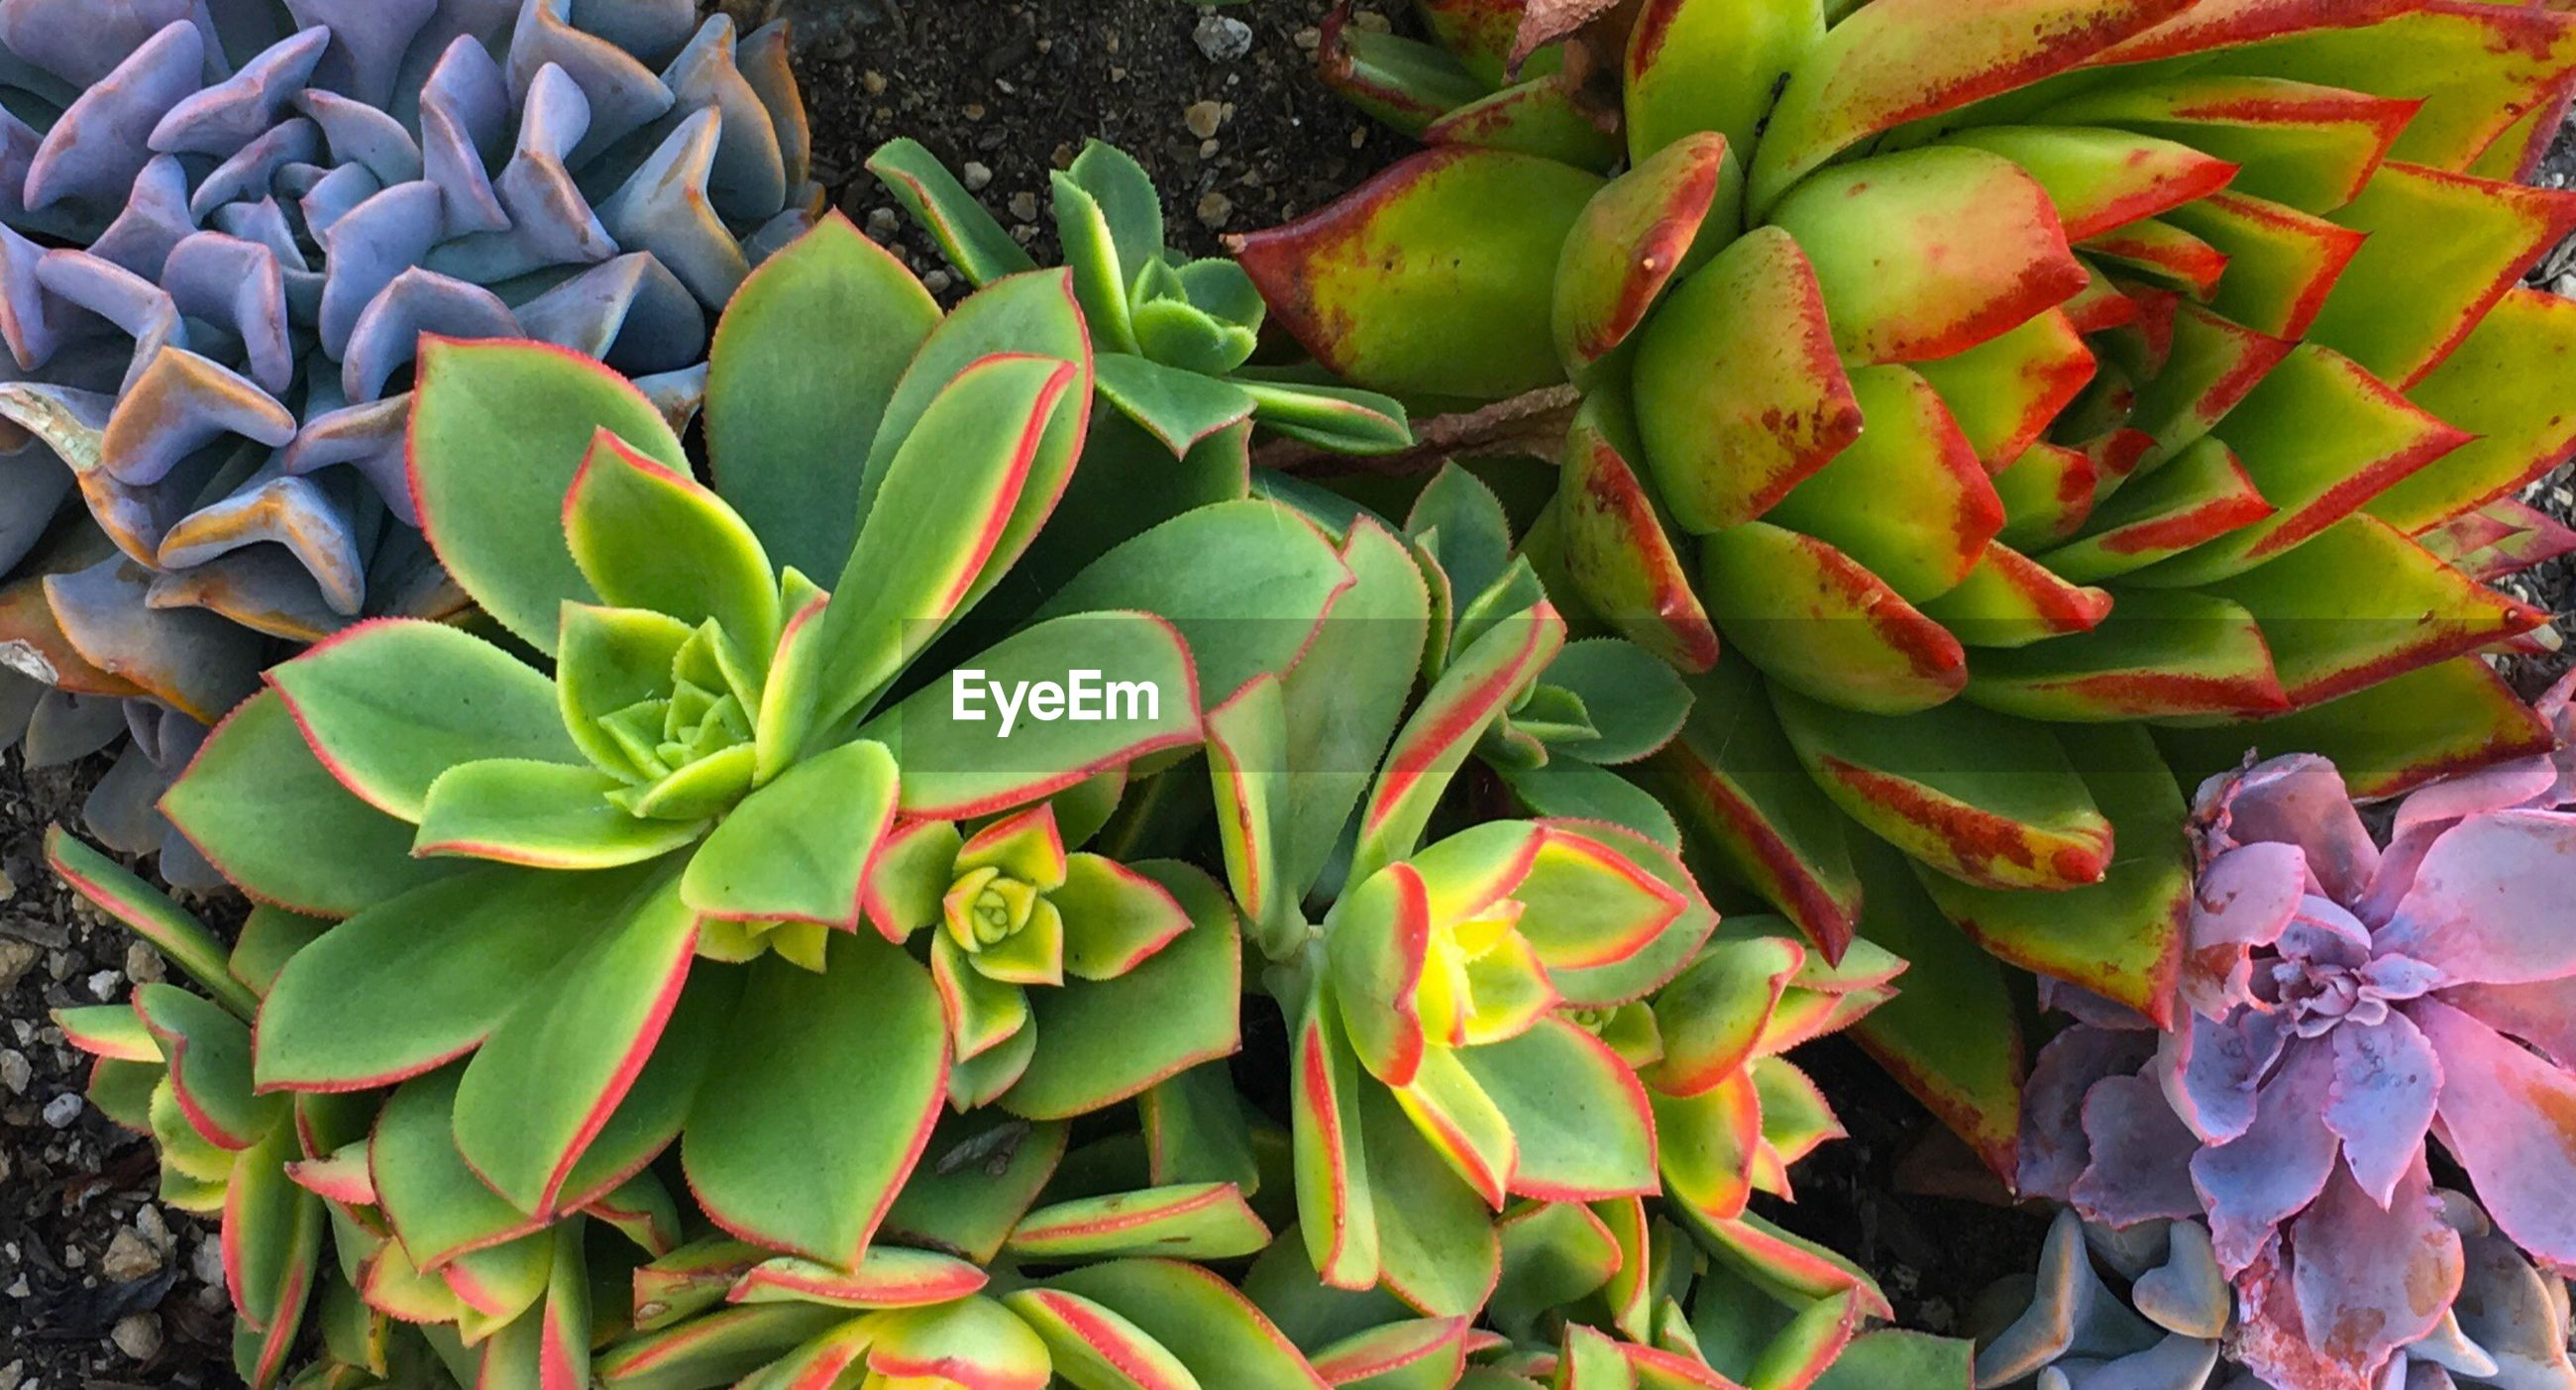 FULL FRAME SHOT OF SUCCULENT PLANT GROWING OUTDOORS